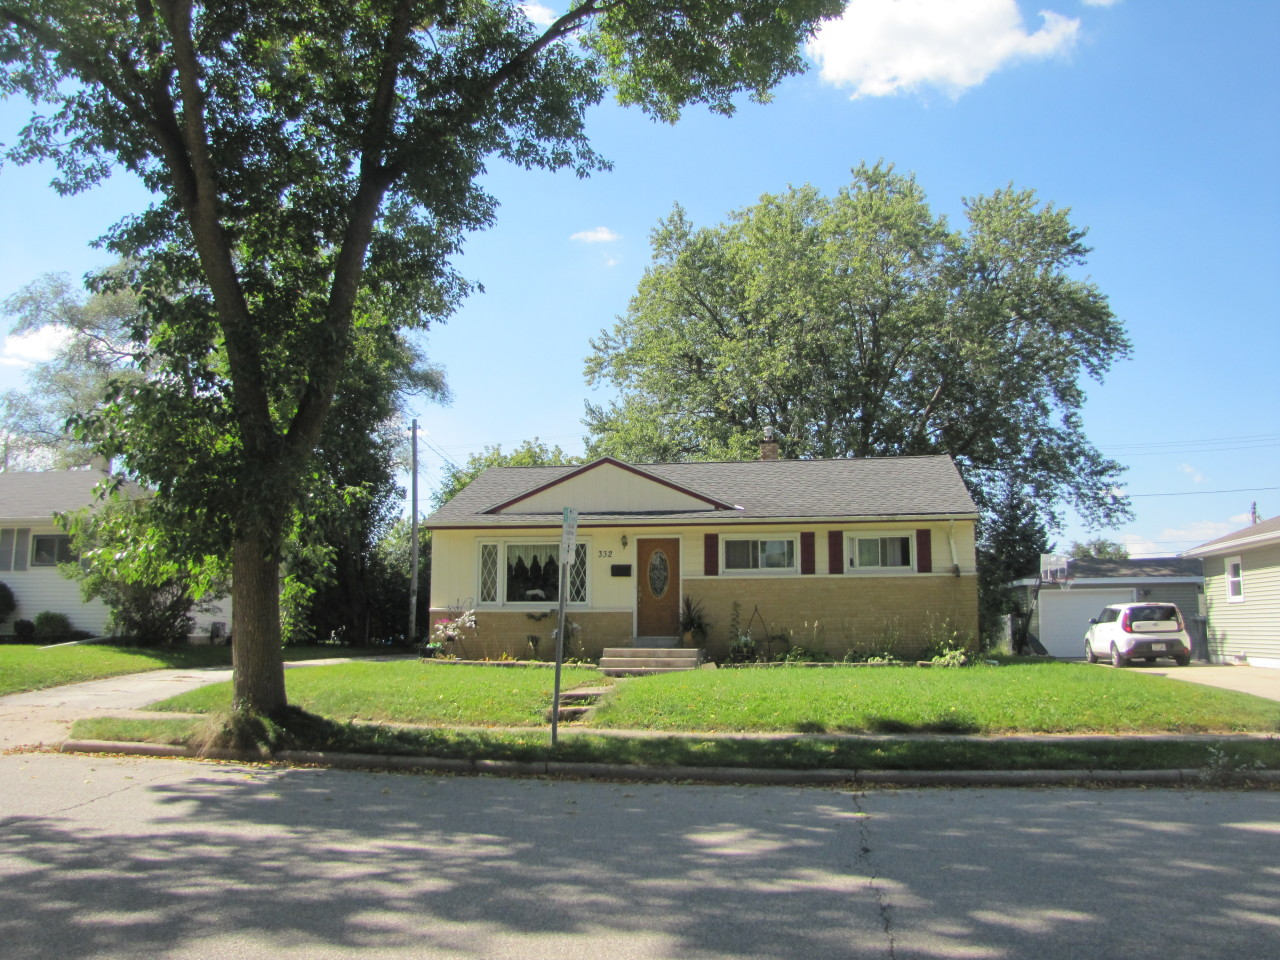 332 Greenmeadow Dr, Waukesha, Wisconsin 53188, 3 Bedrooms Bedrooms, ,1 BathroomBathrooms,Single-Family,For Sale,Greenmeadow Dr,1605373